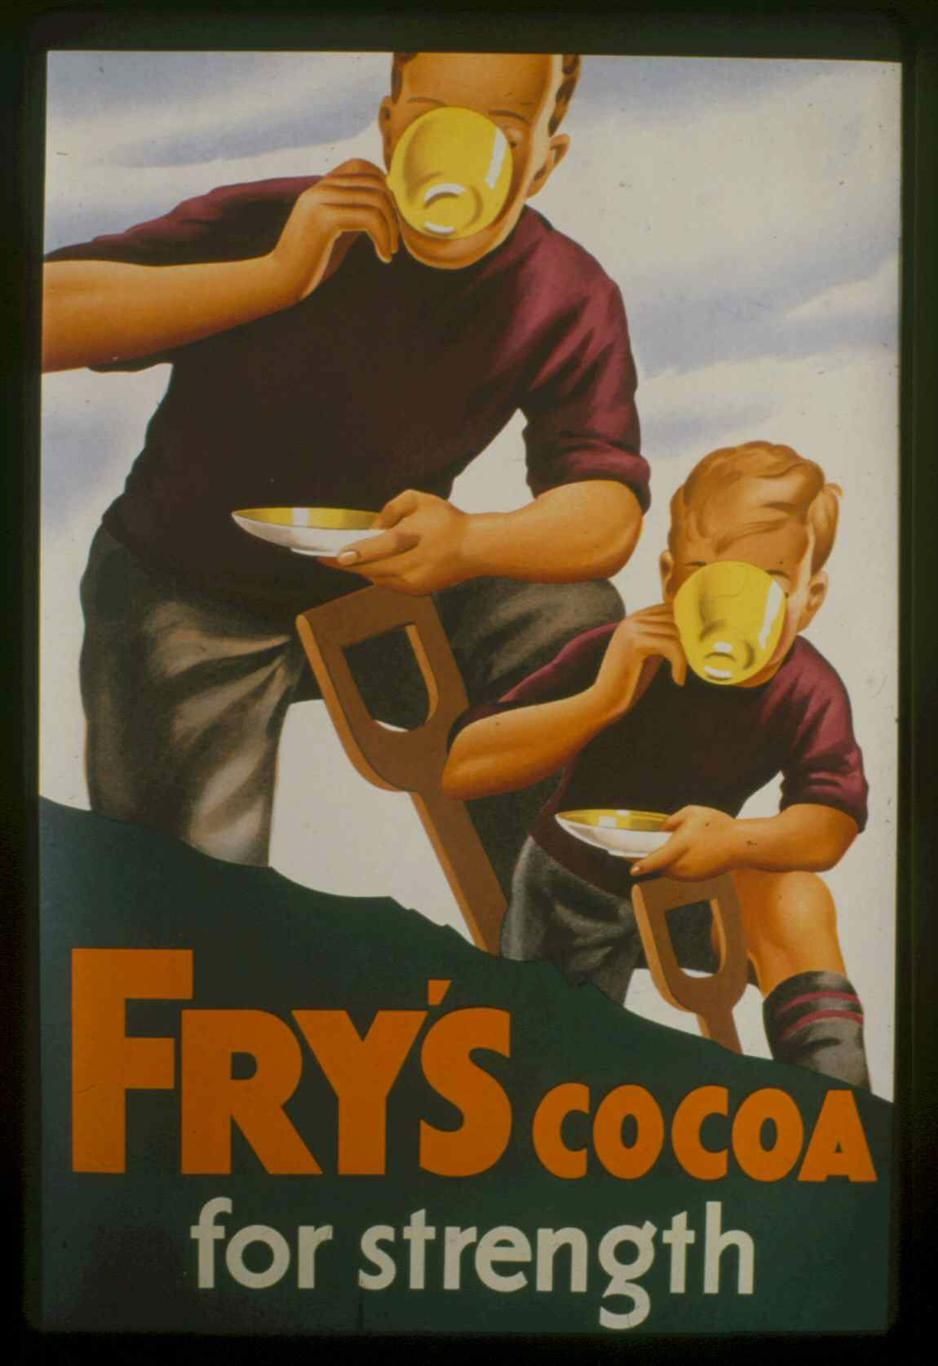 Fry's cocoa for strength - 1935 -